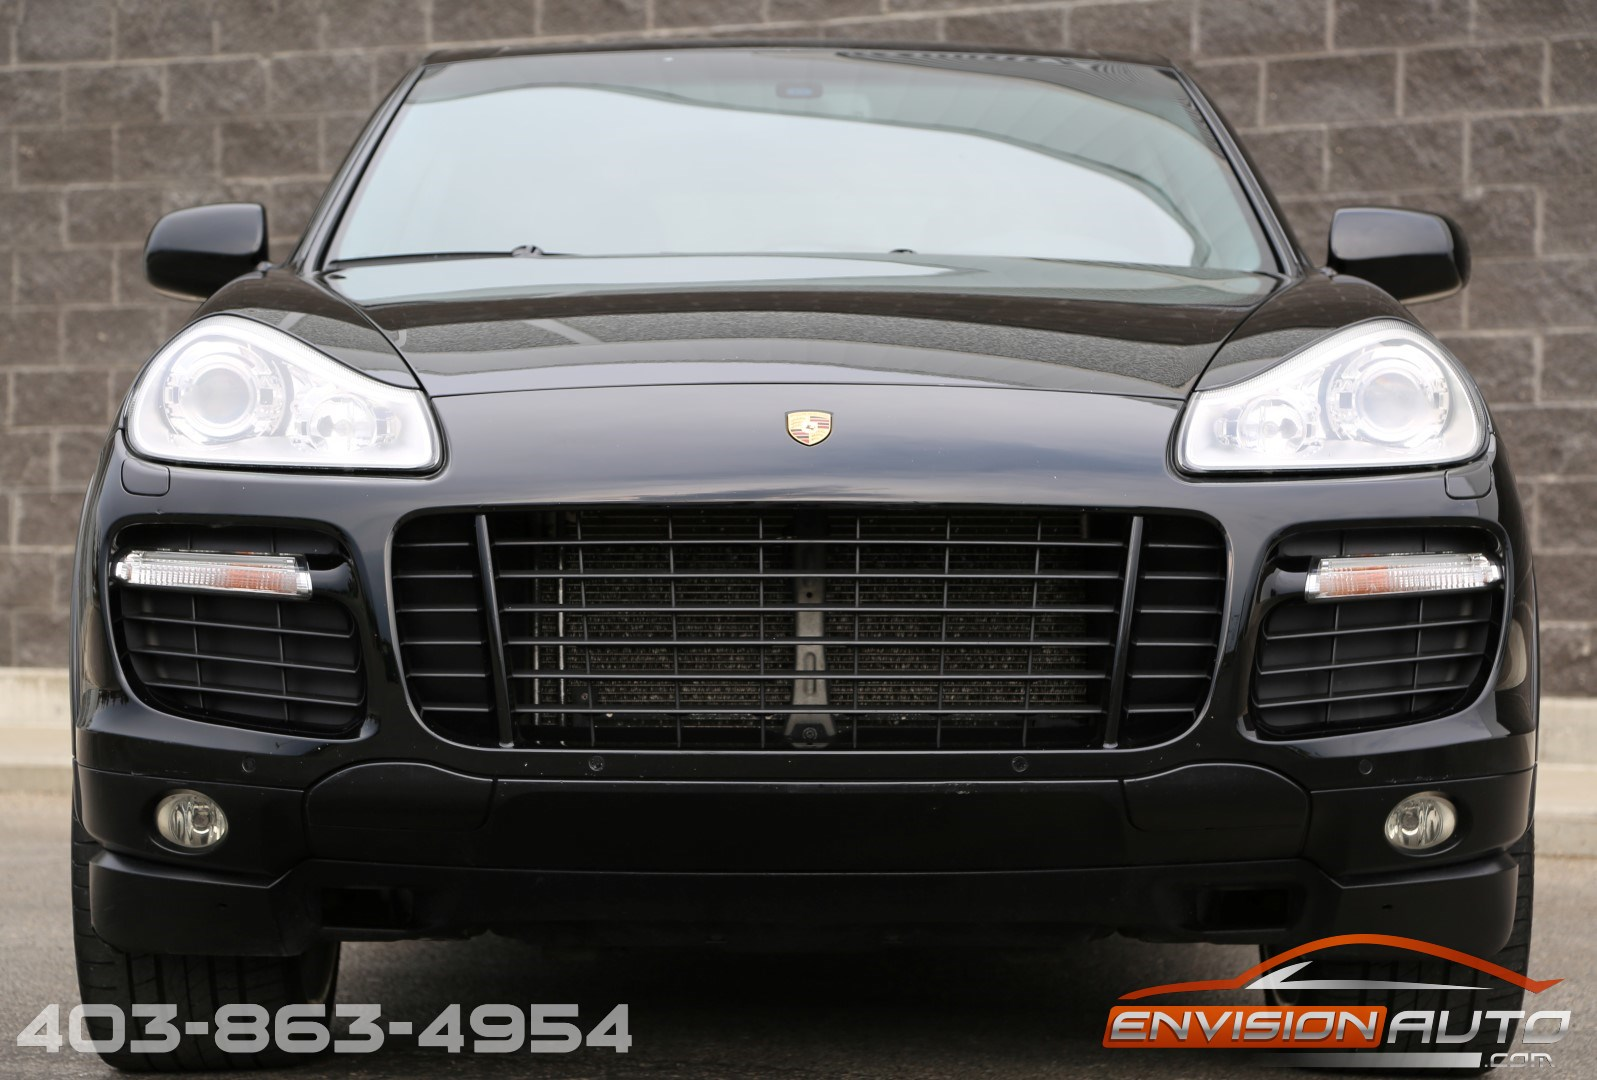 2009 porsche cayenne gts 1 owner clean history envision auto. Black Bedroom Furniture Sets. Home Design Ideas